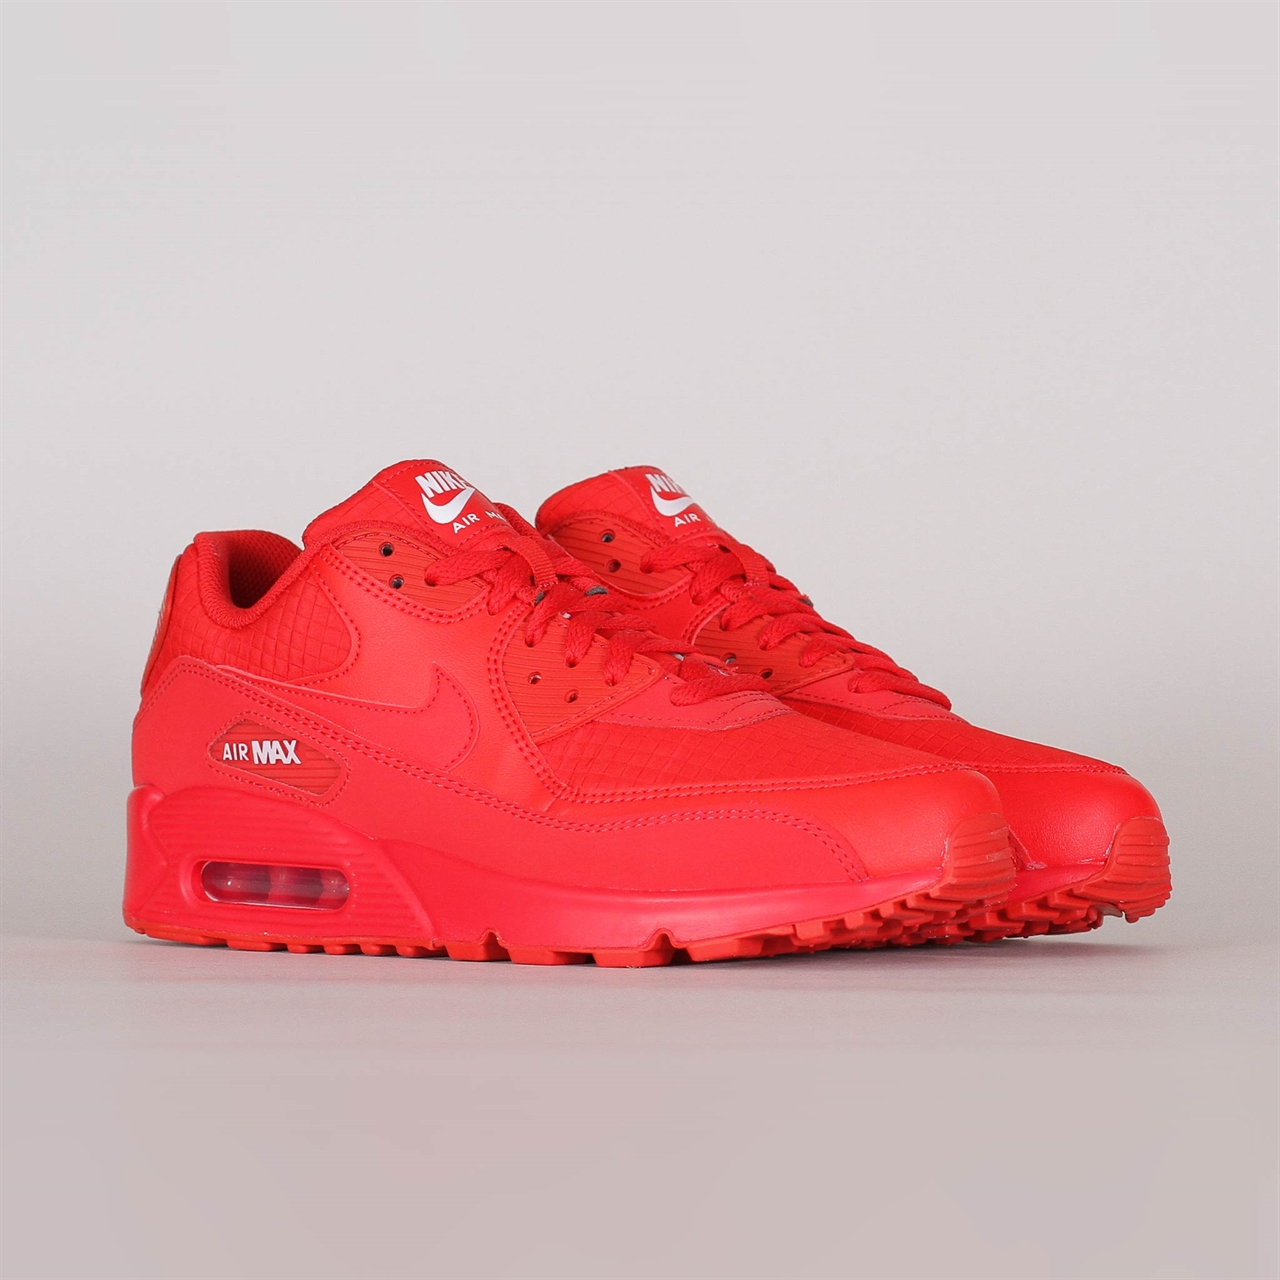 Shelta Nike Air Max 90 University Red (AJ1285 602)